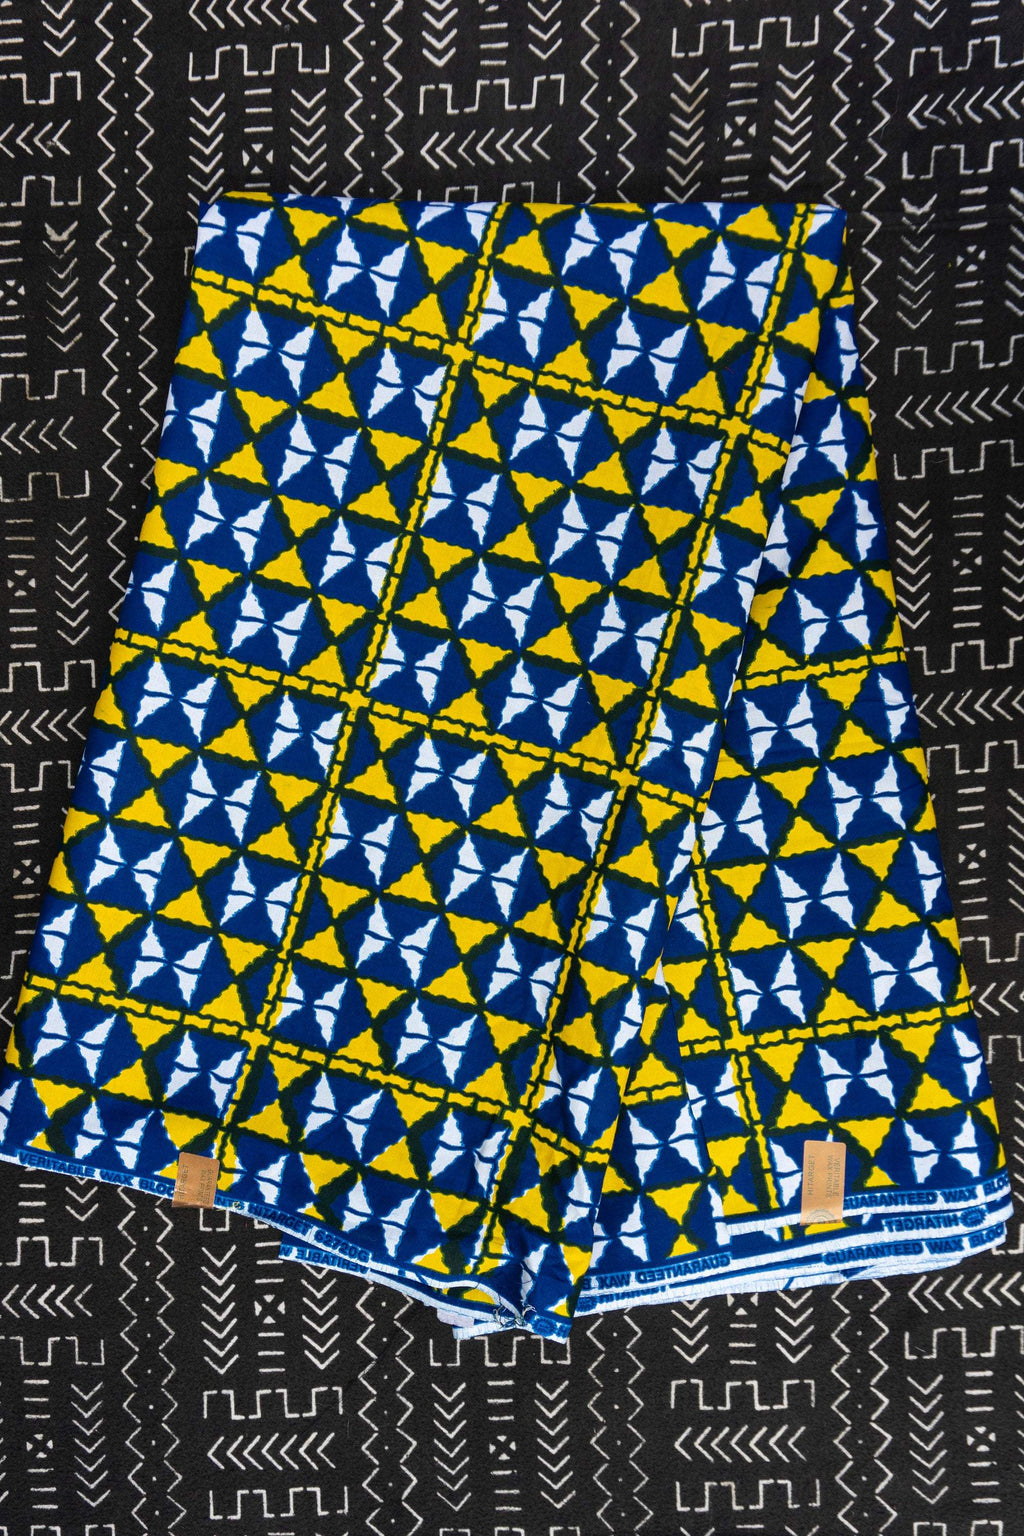 Blue Yellow African Print Fabric / Geometric Ankara Fabric / African fabric by the yard / Quilting / Ankara wax print / Sewing Project